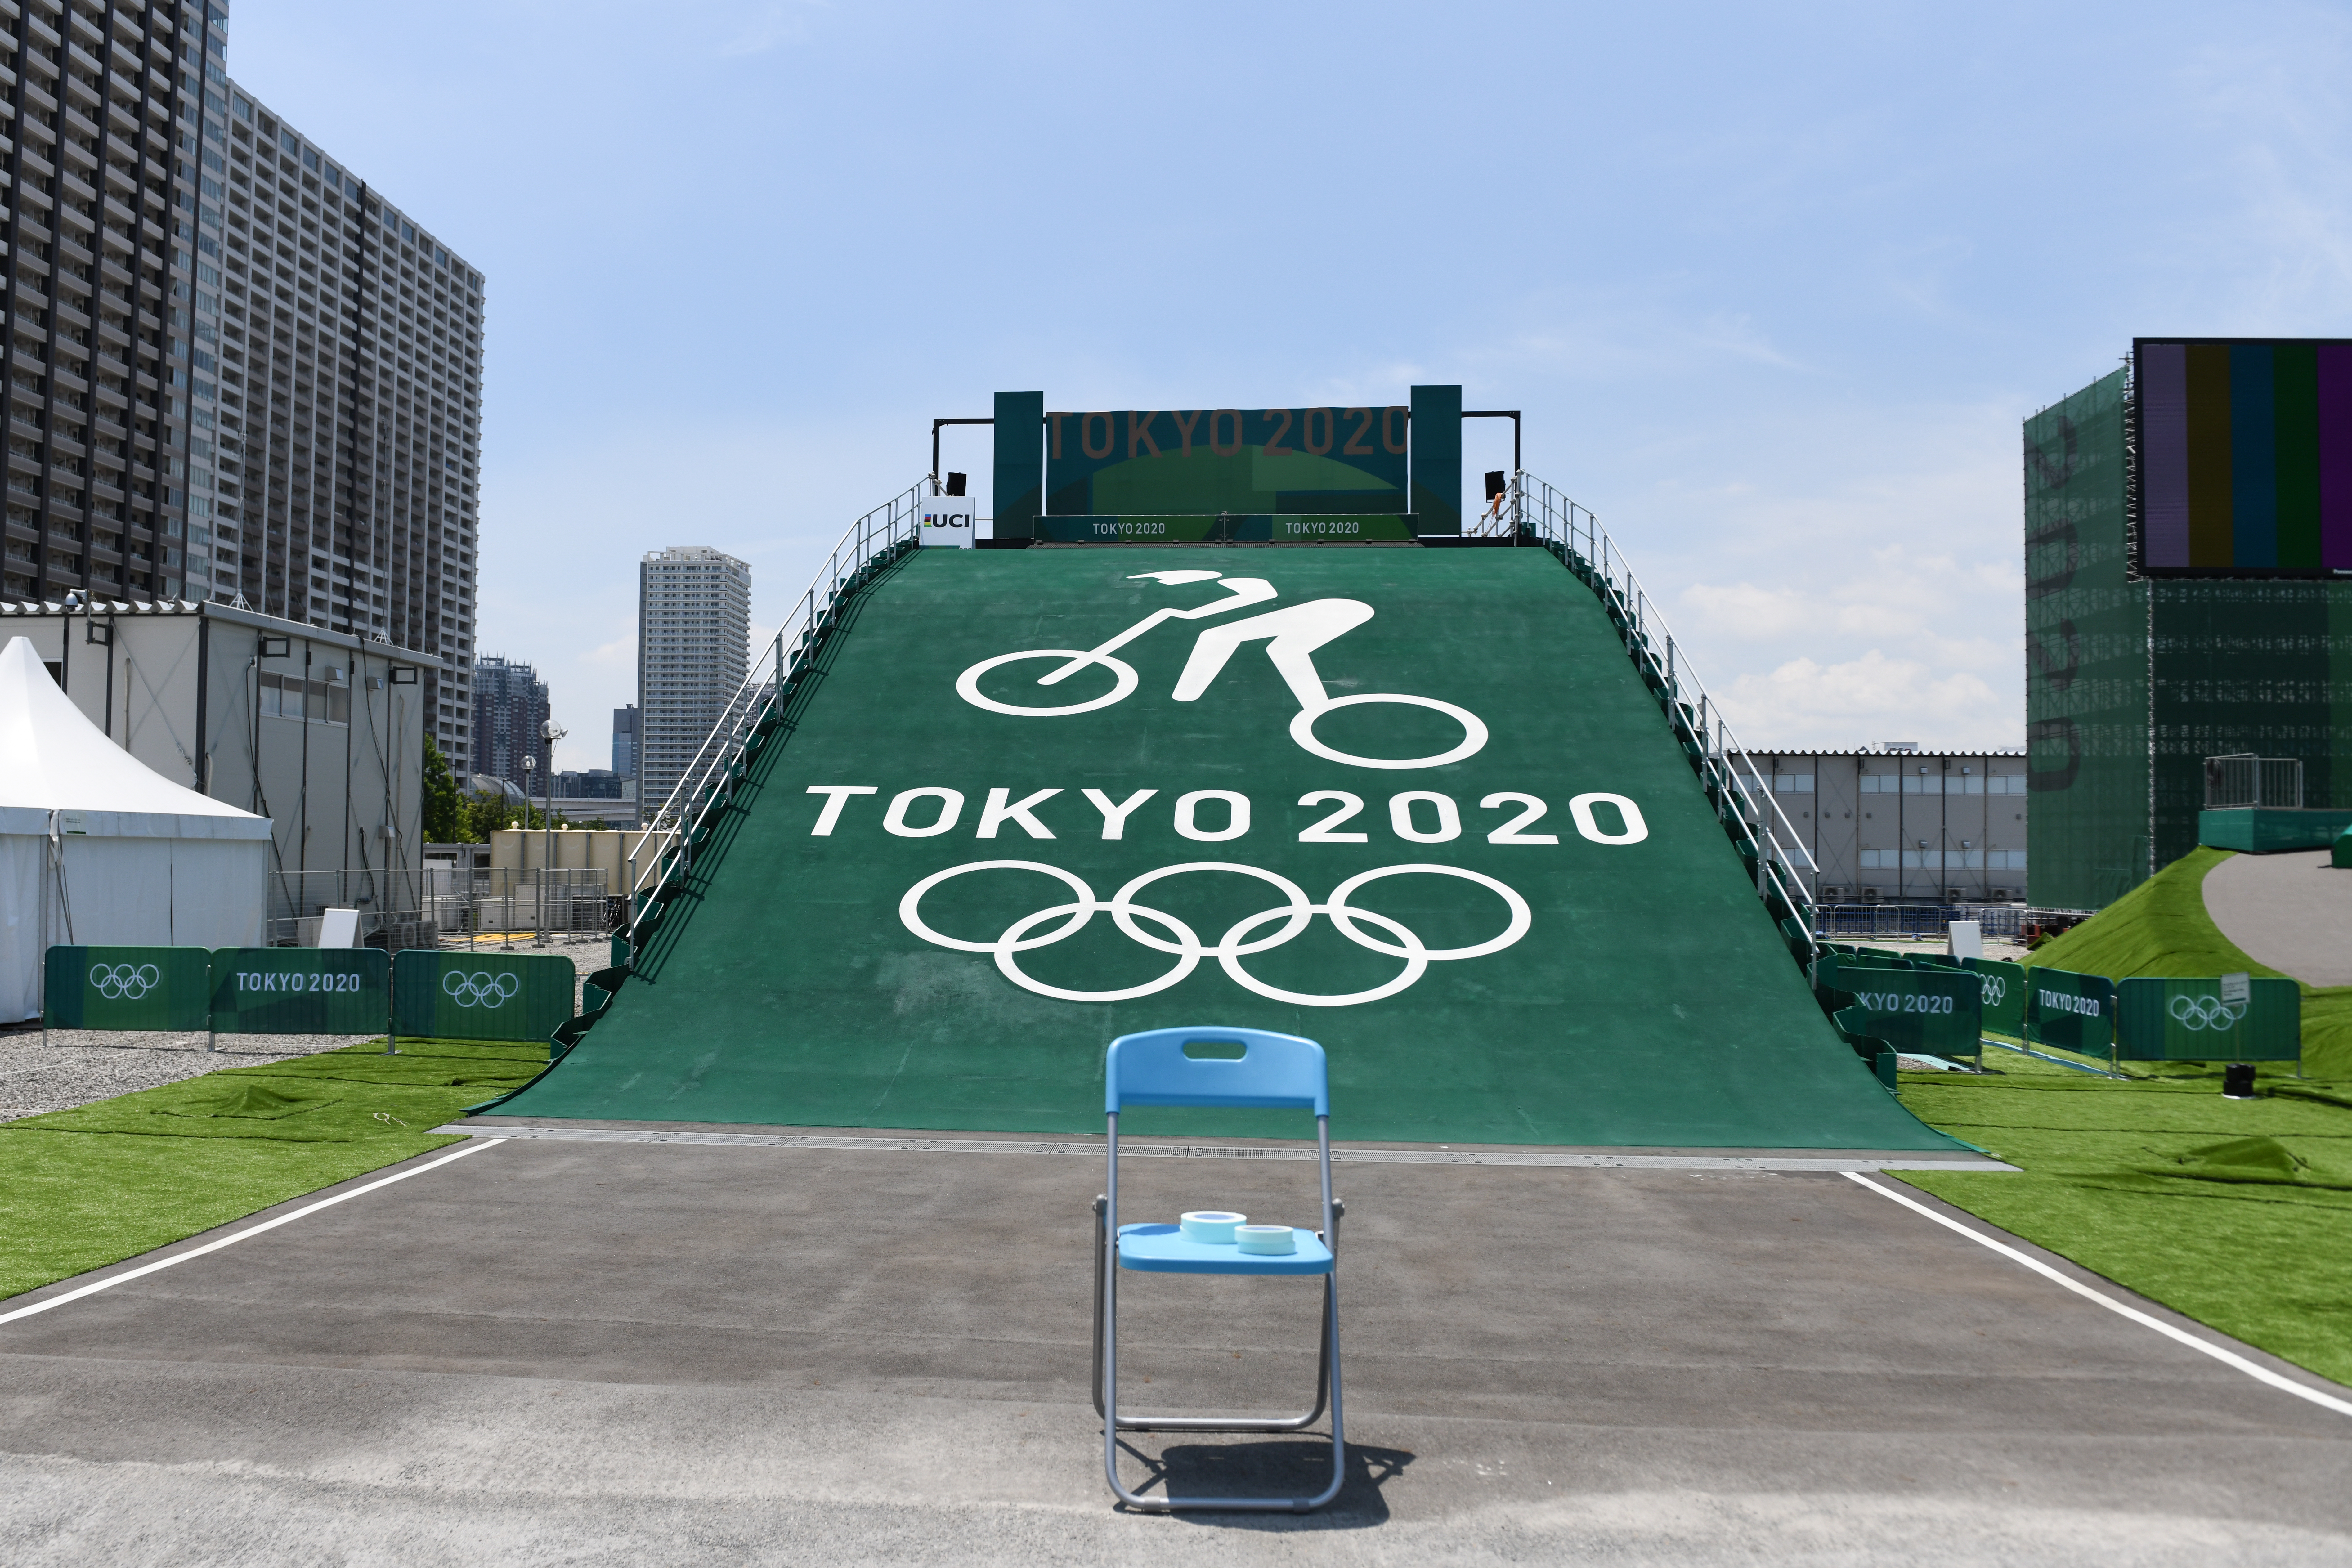 An empty folding chair in front of a ramp with the Tokyo 2020 Olympic rings on the slope.